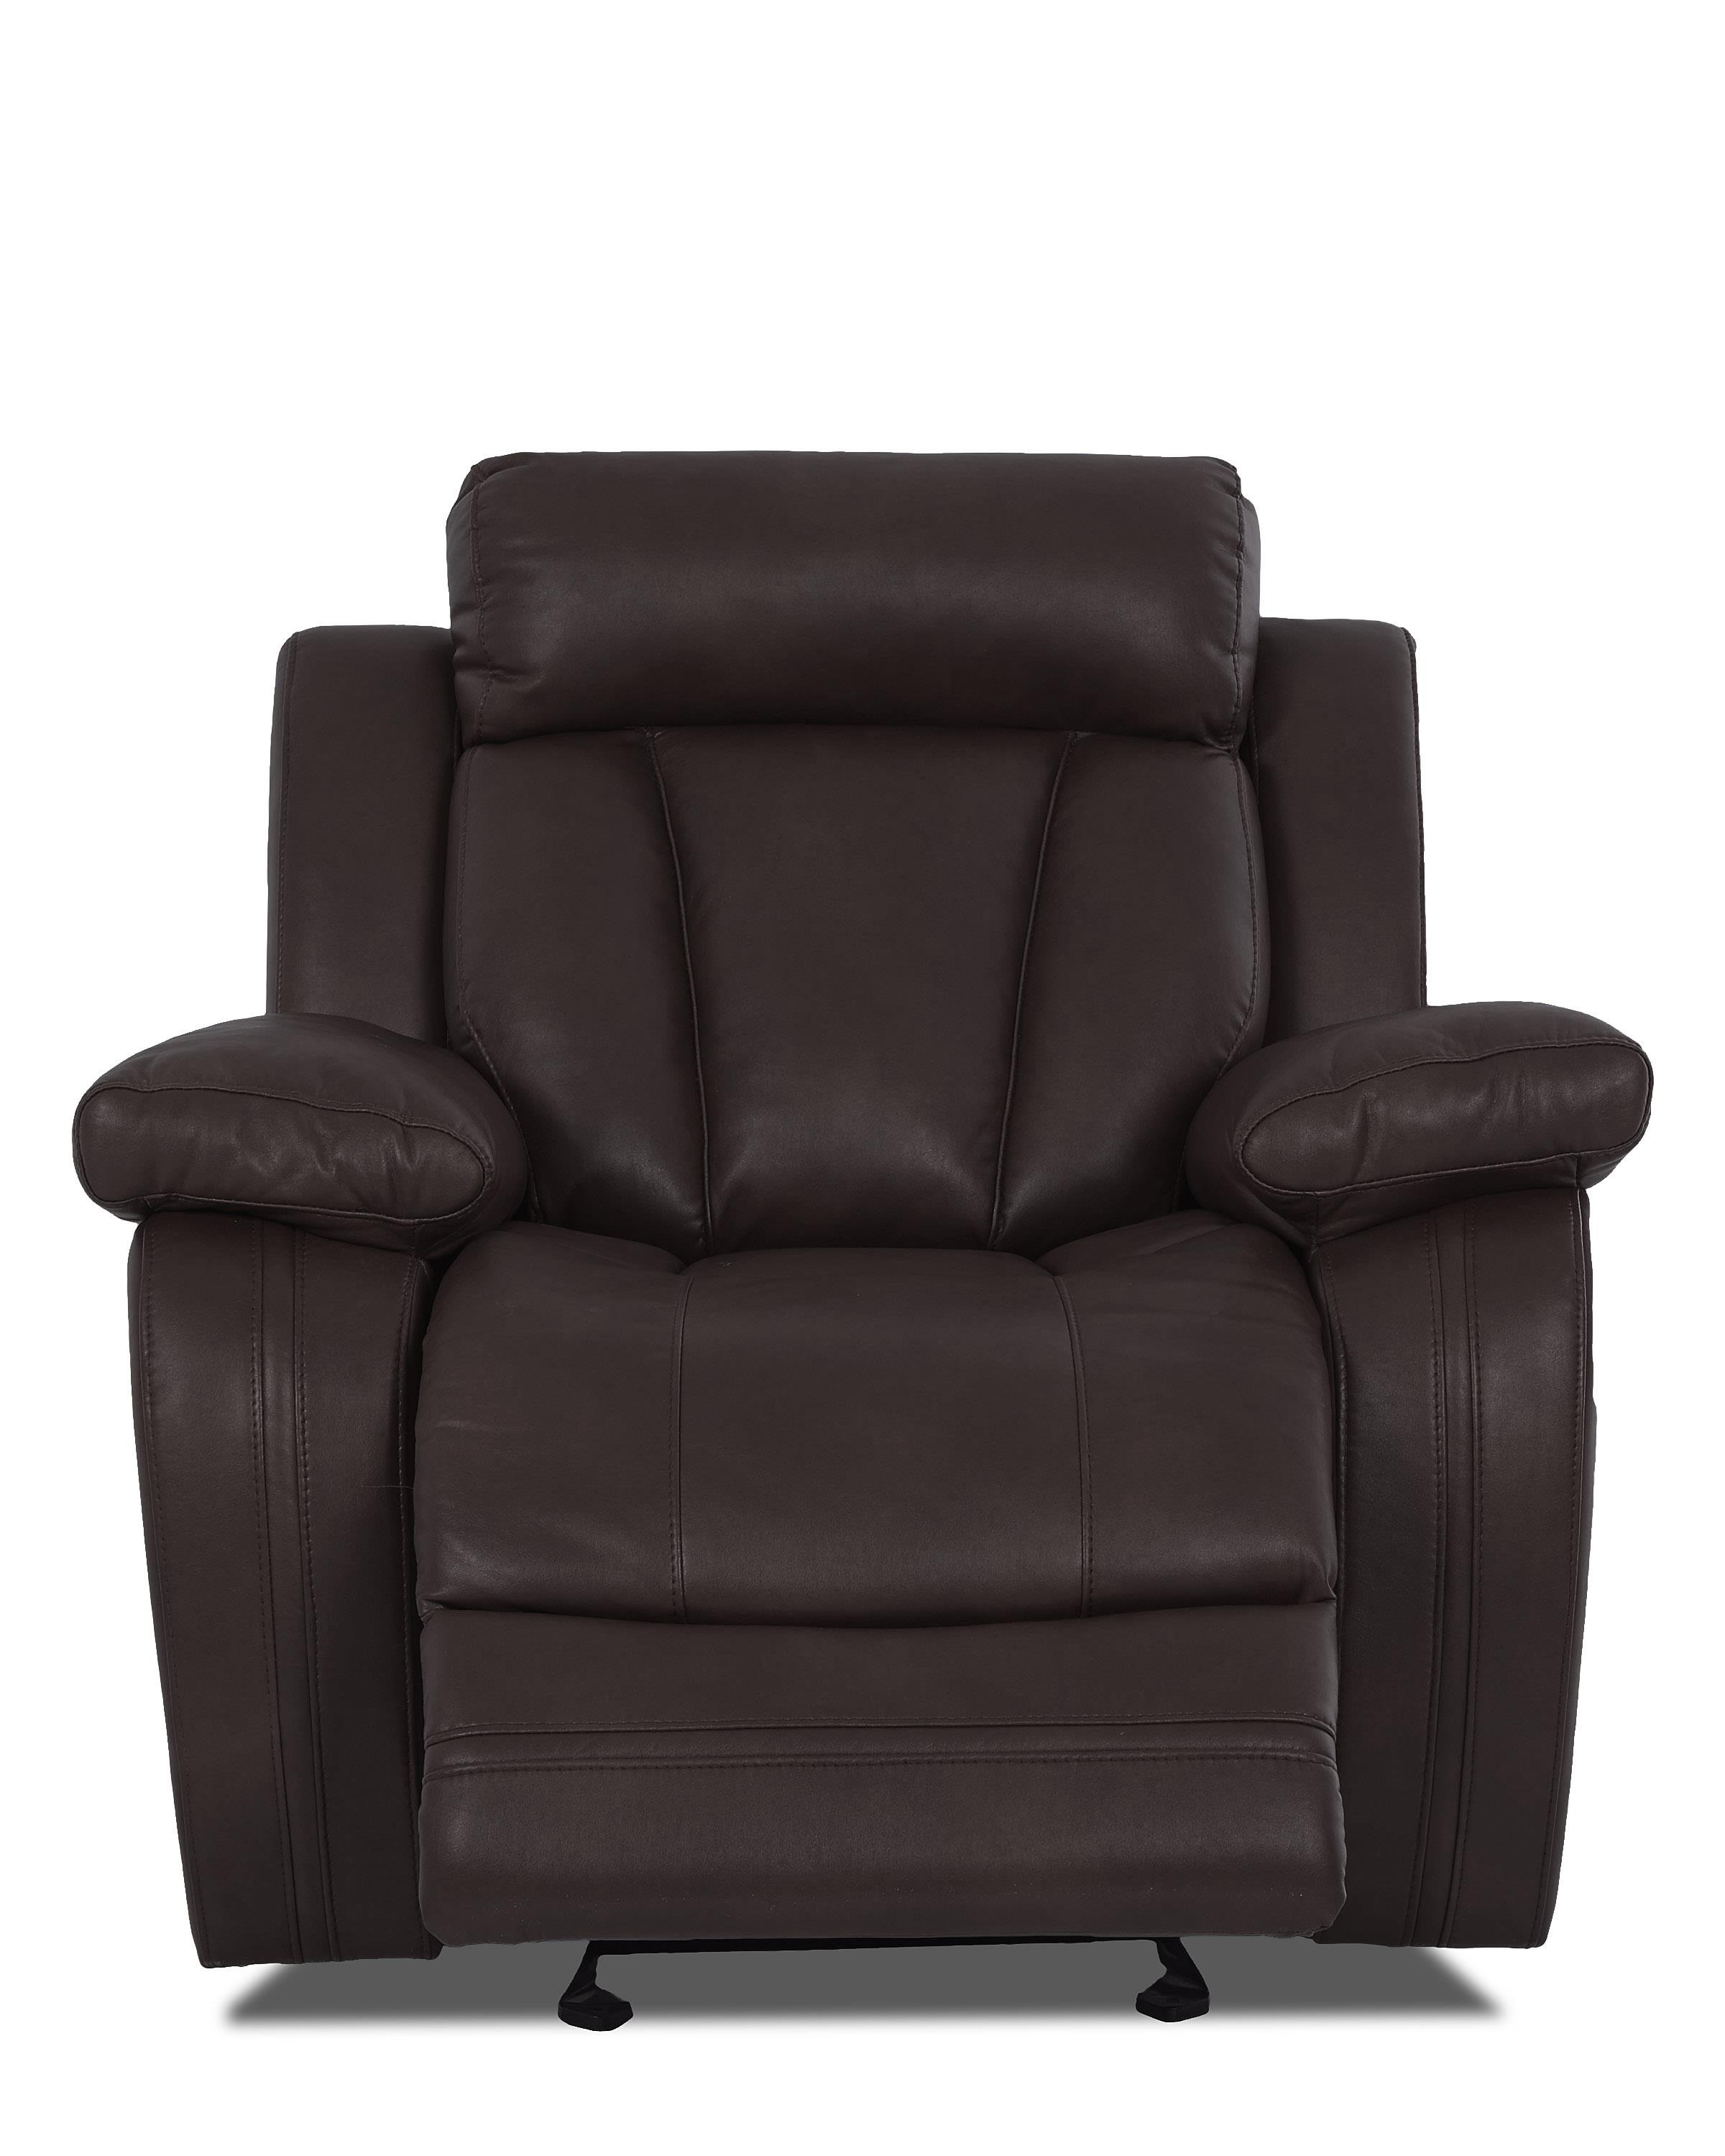 Atticus-US Gliding Recliner Chair by Klaussner International at Fine Home Furnishings